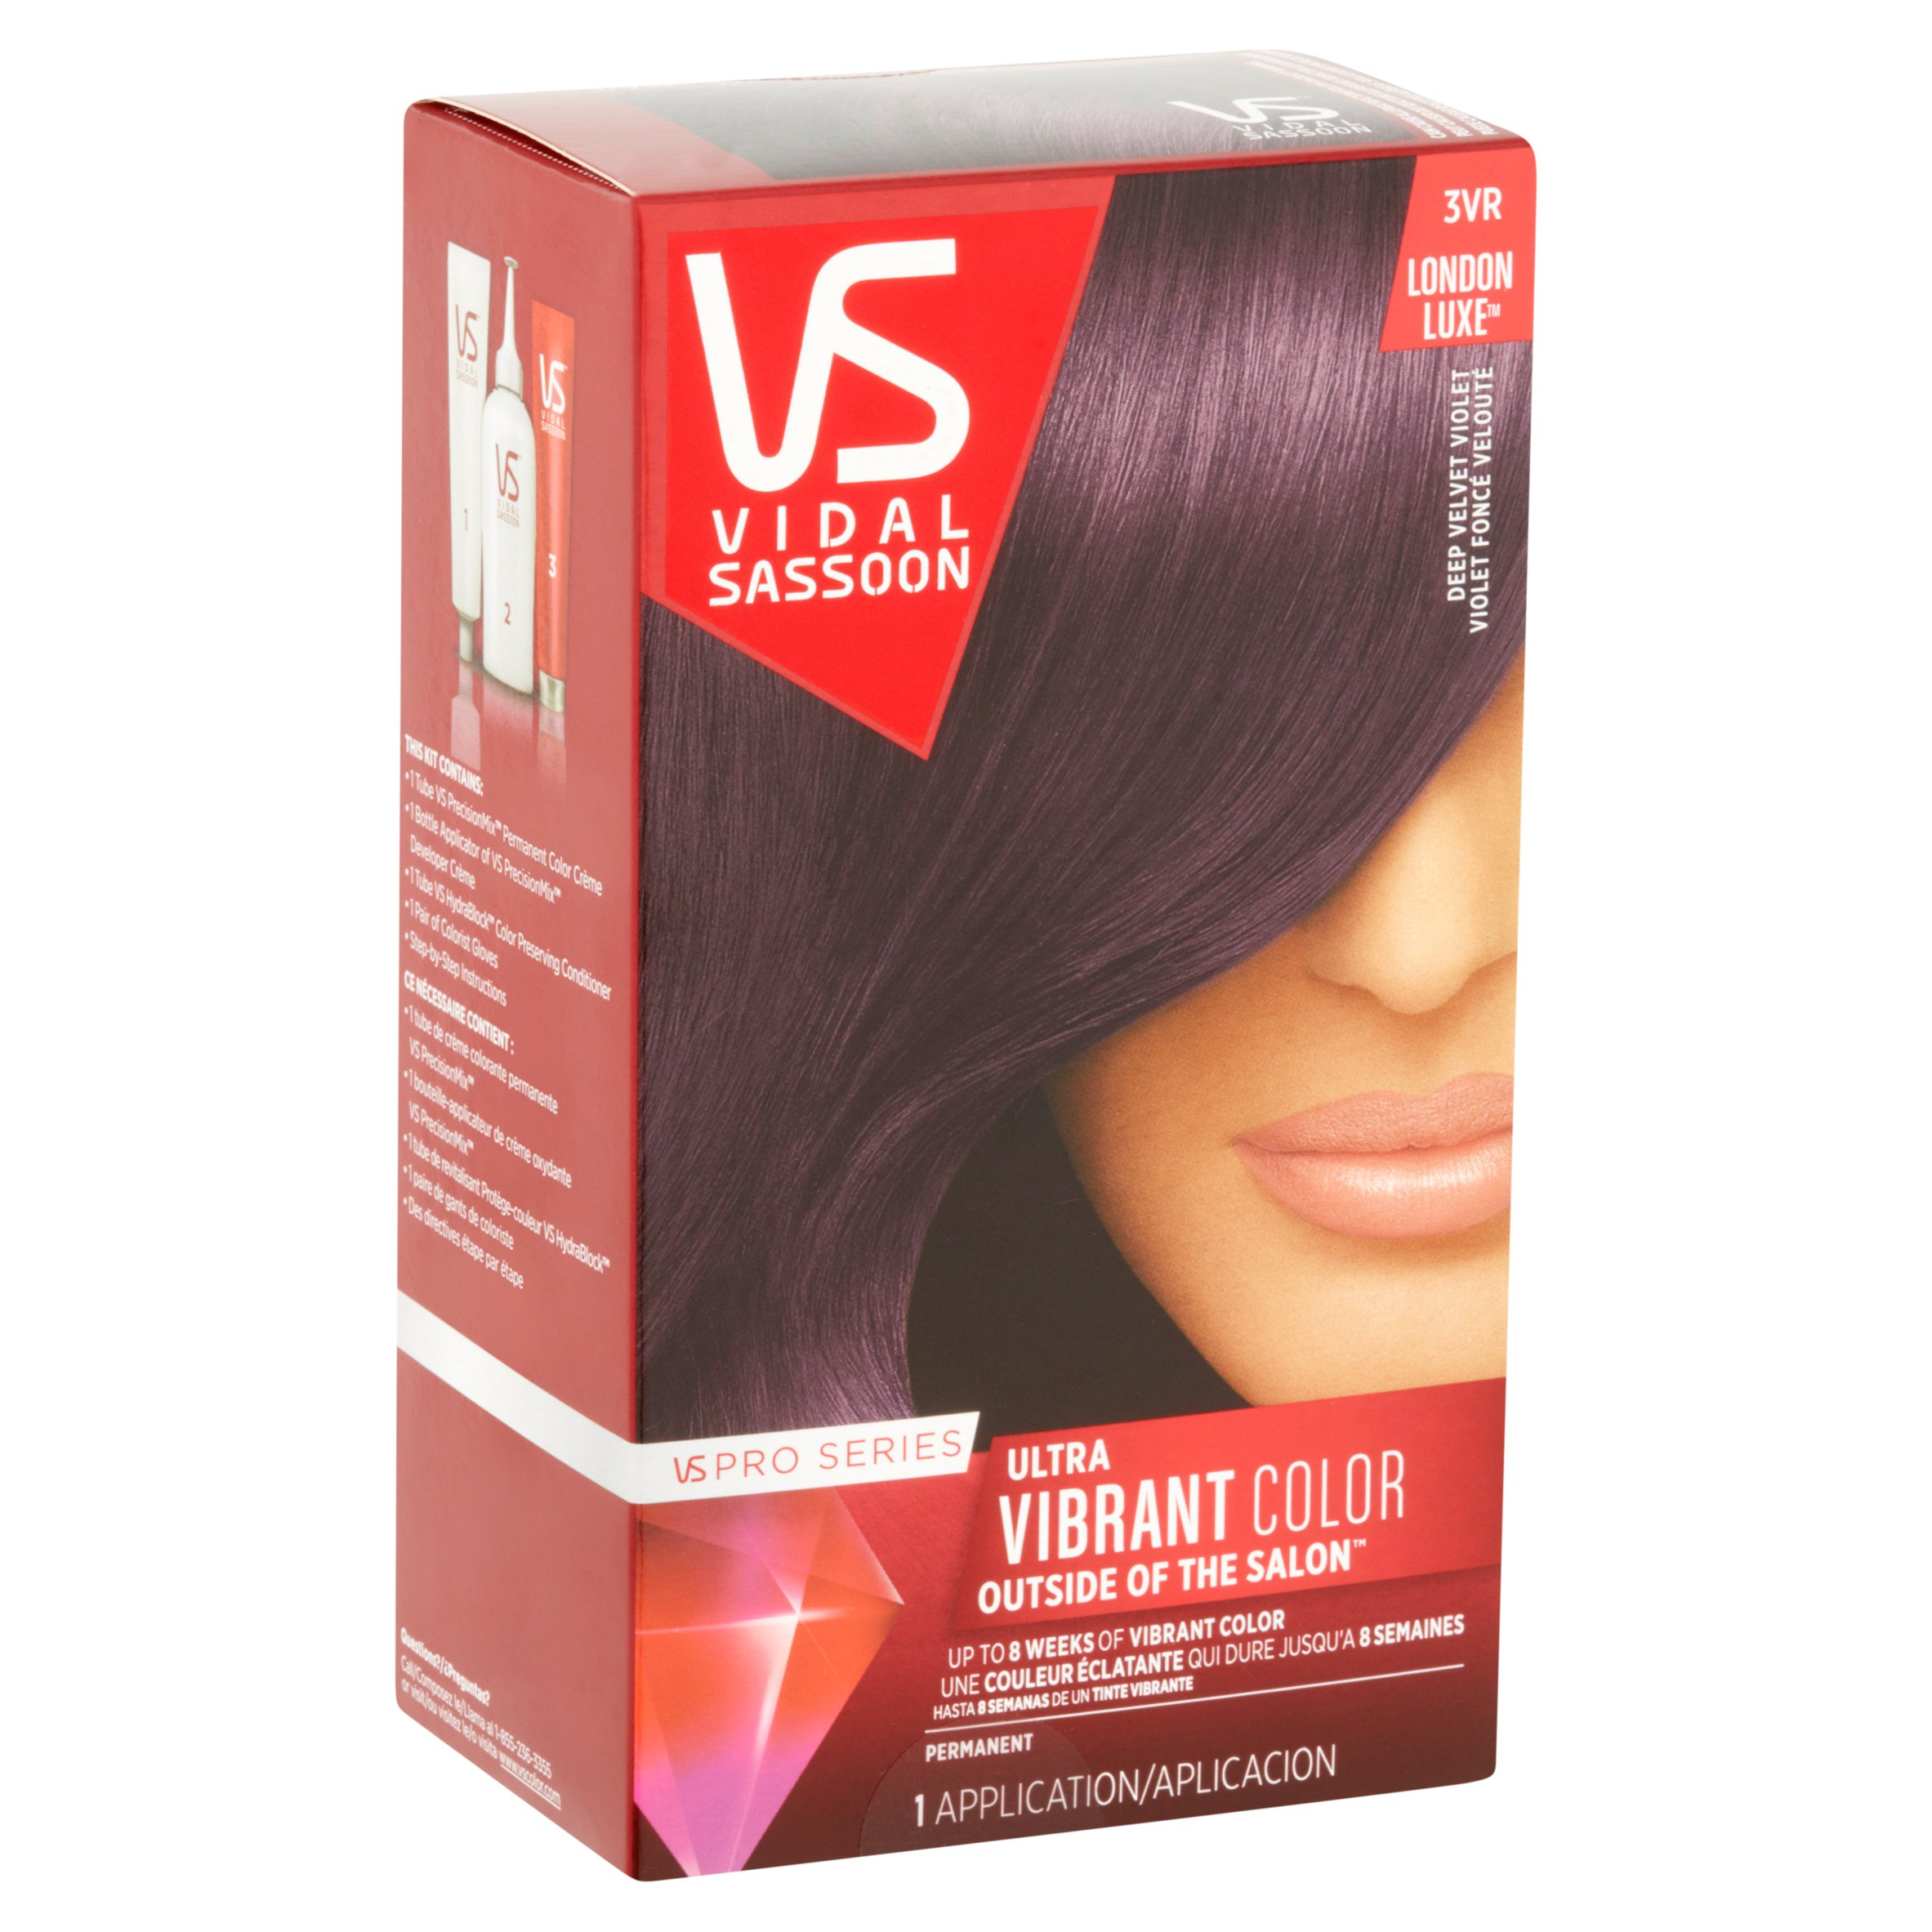 Vidal Sassoon London Luxe Pro Series 9wv Mulberry Street Blonde